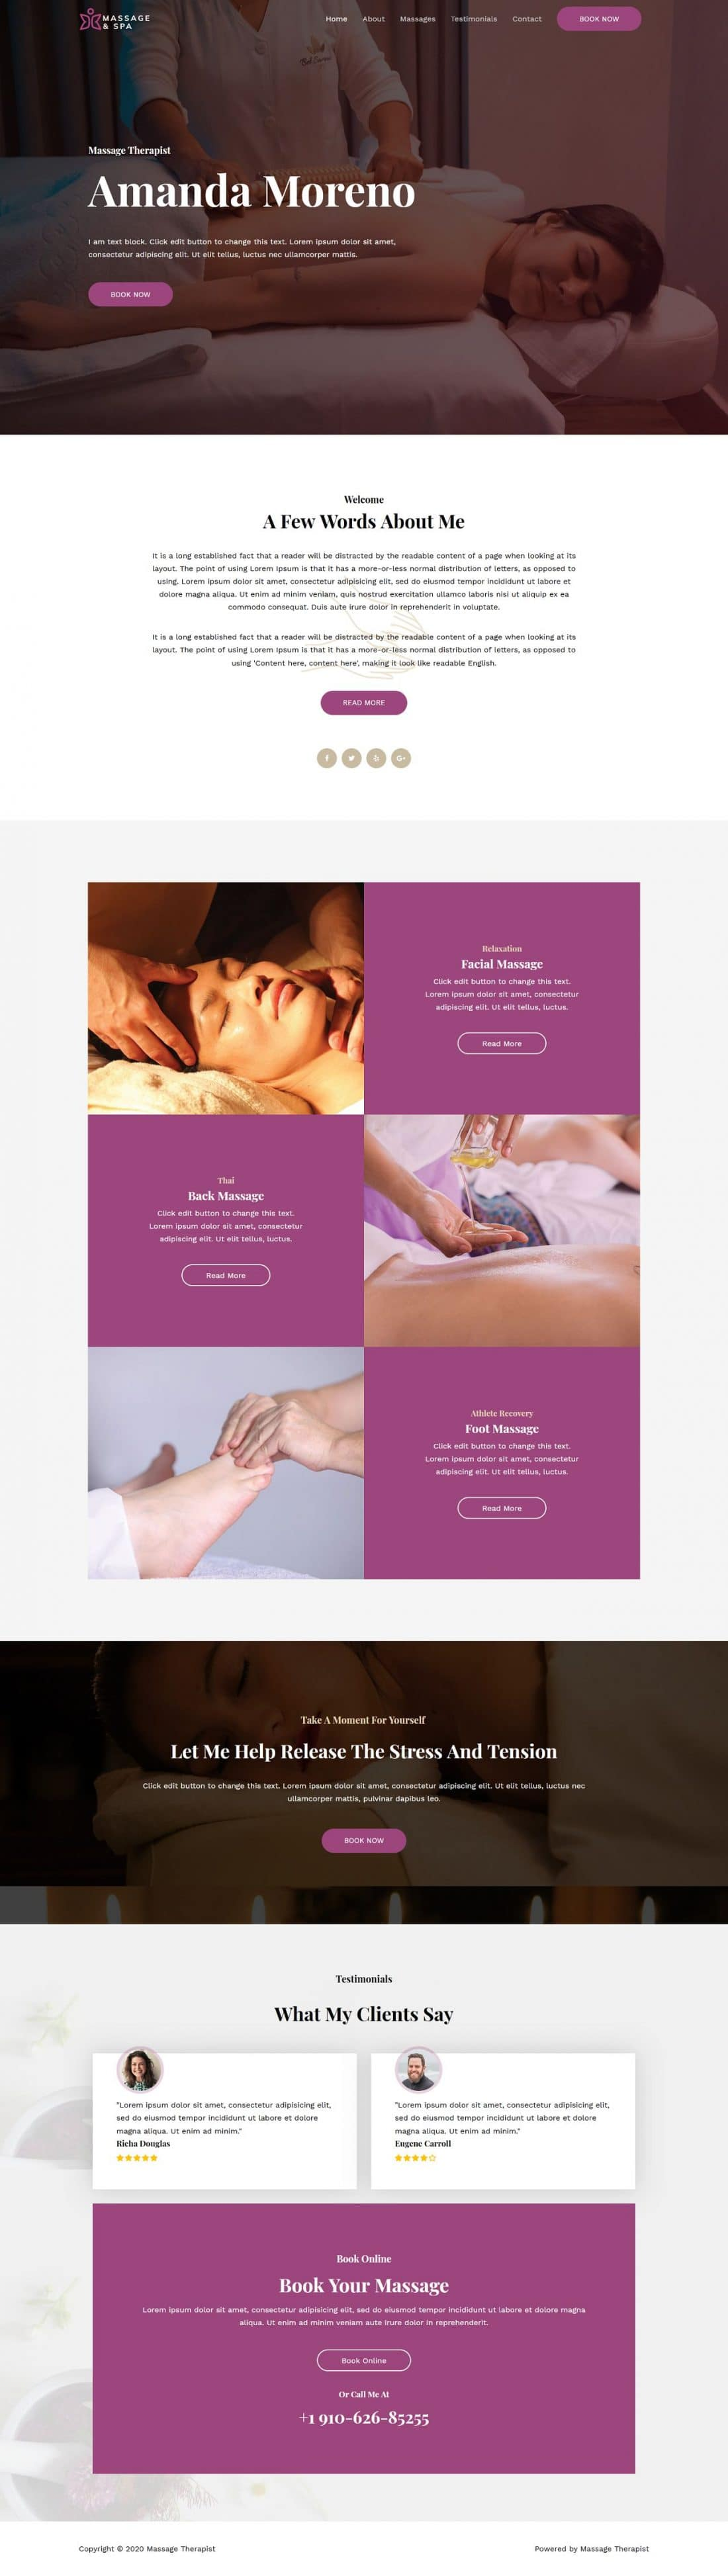 Fagowi.com Website Design Templates For Massage Therapist - Home Page Image